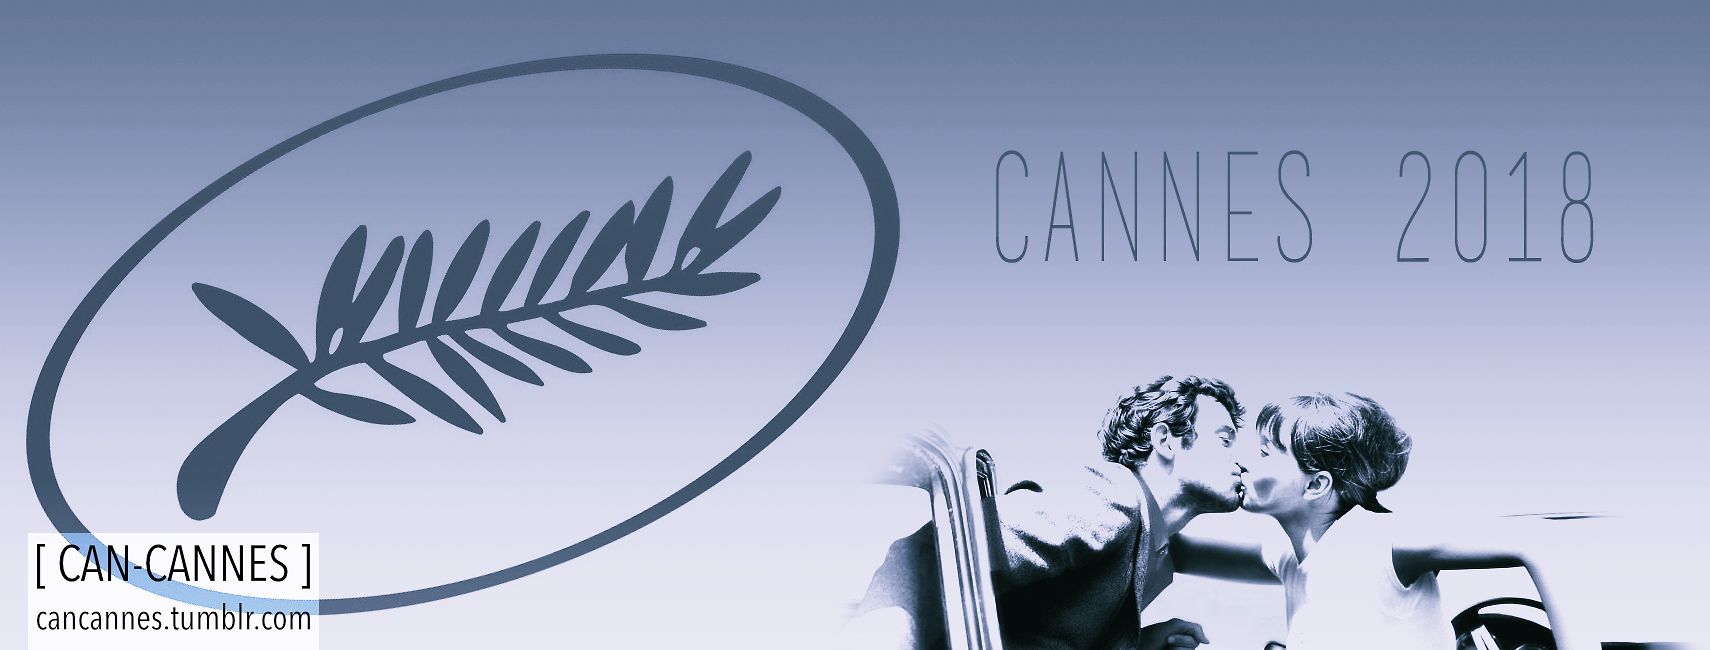 Le Journal du Festival de Cannes